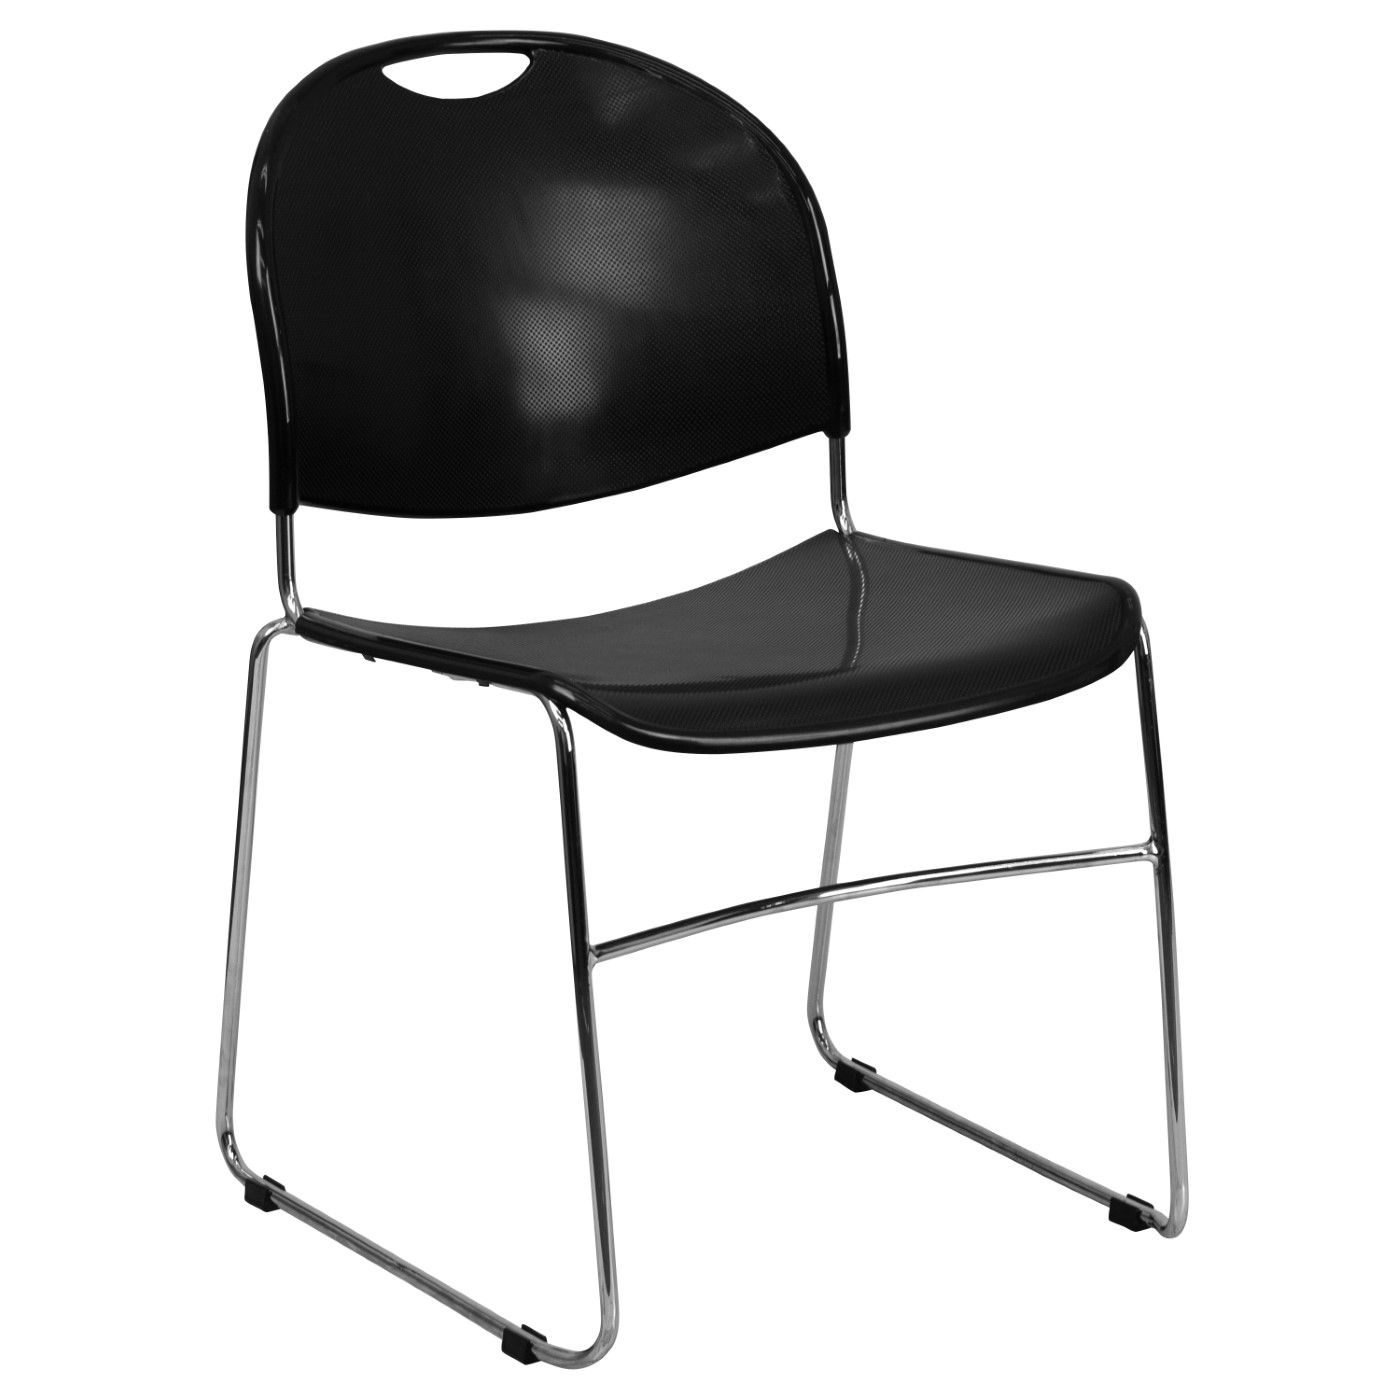 TOUGH ENOUGH Series 880 lb. Capacity Black Ultra-Compact Stack Chair with Chrome Frame